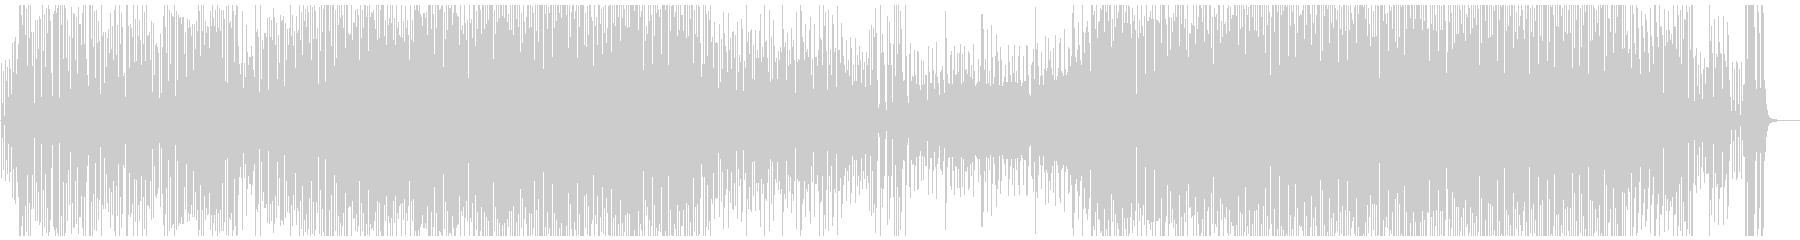 The cuteness of a boy who is crazy about what he likes's unreproduced waveform